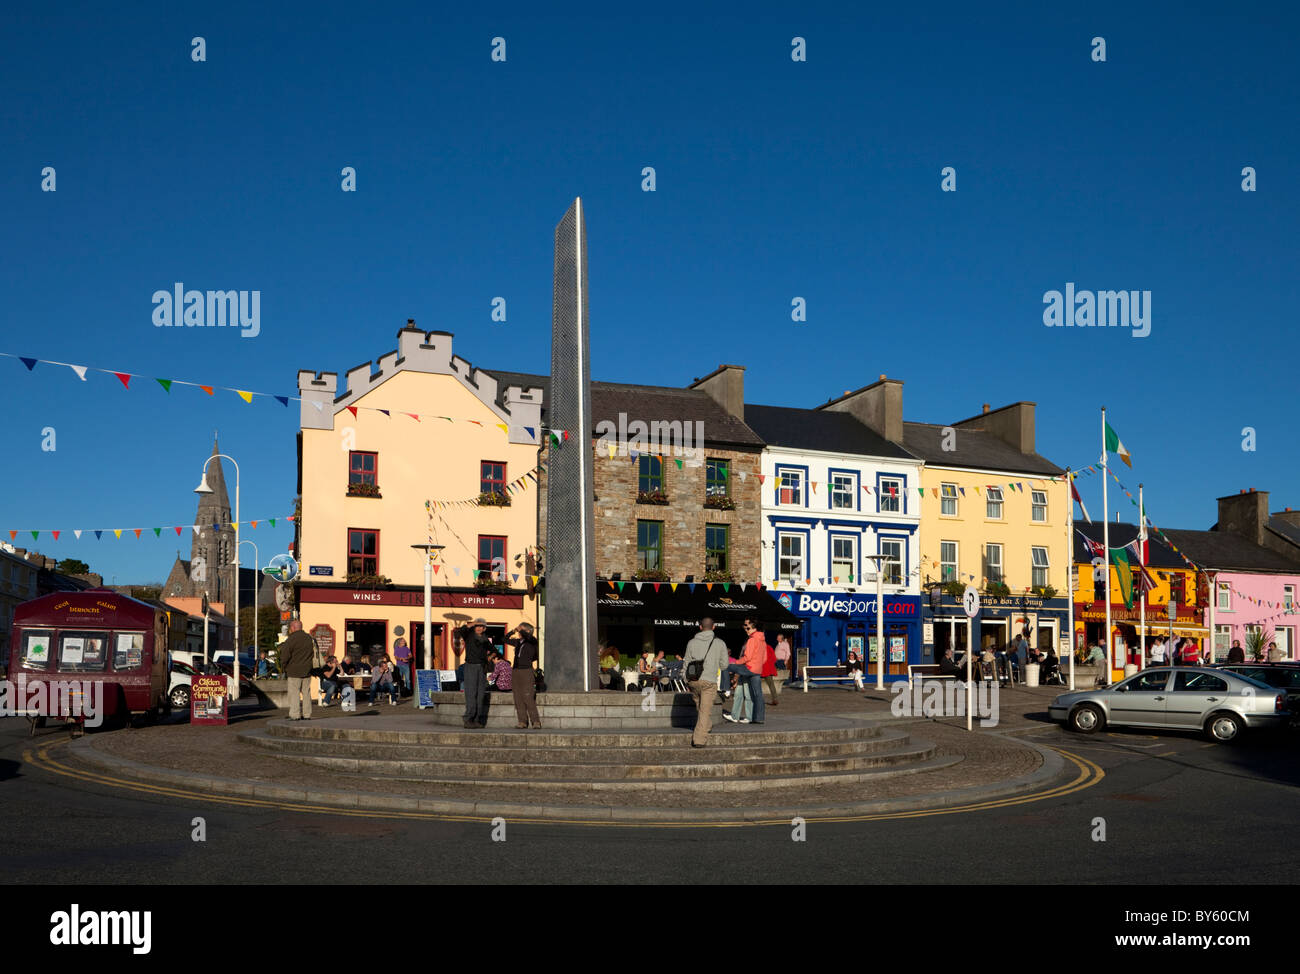 Clifden Town Centre and Contemporary Sculpture, Connemara, County Galway, Ireland - Stock Image